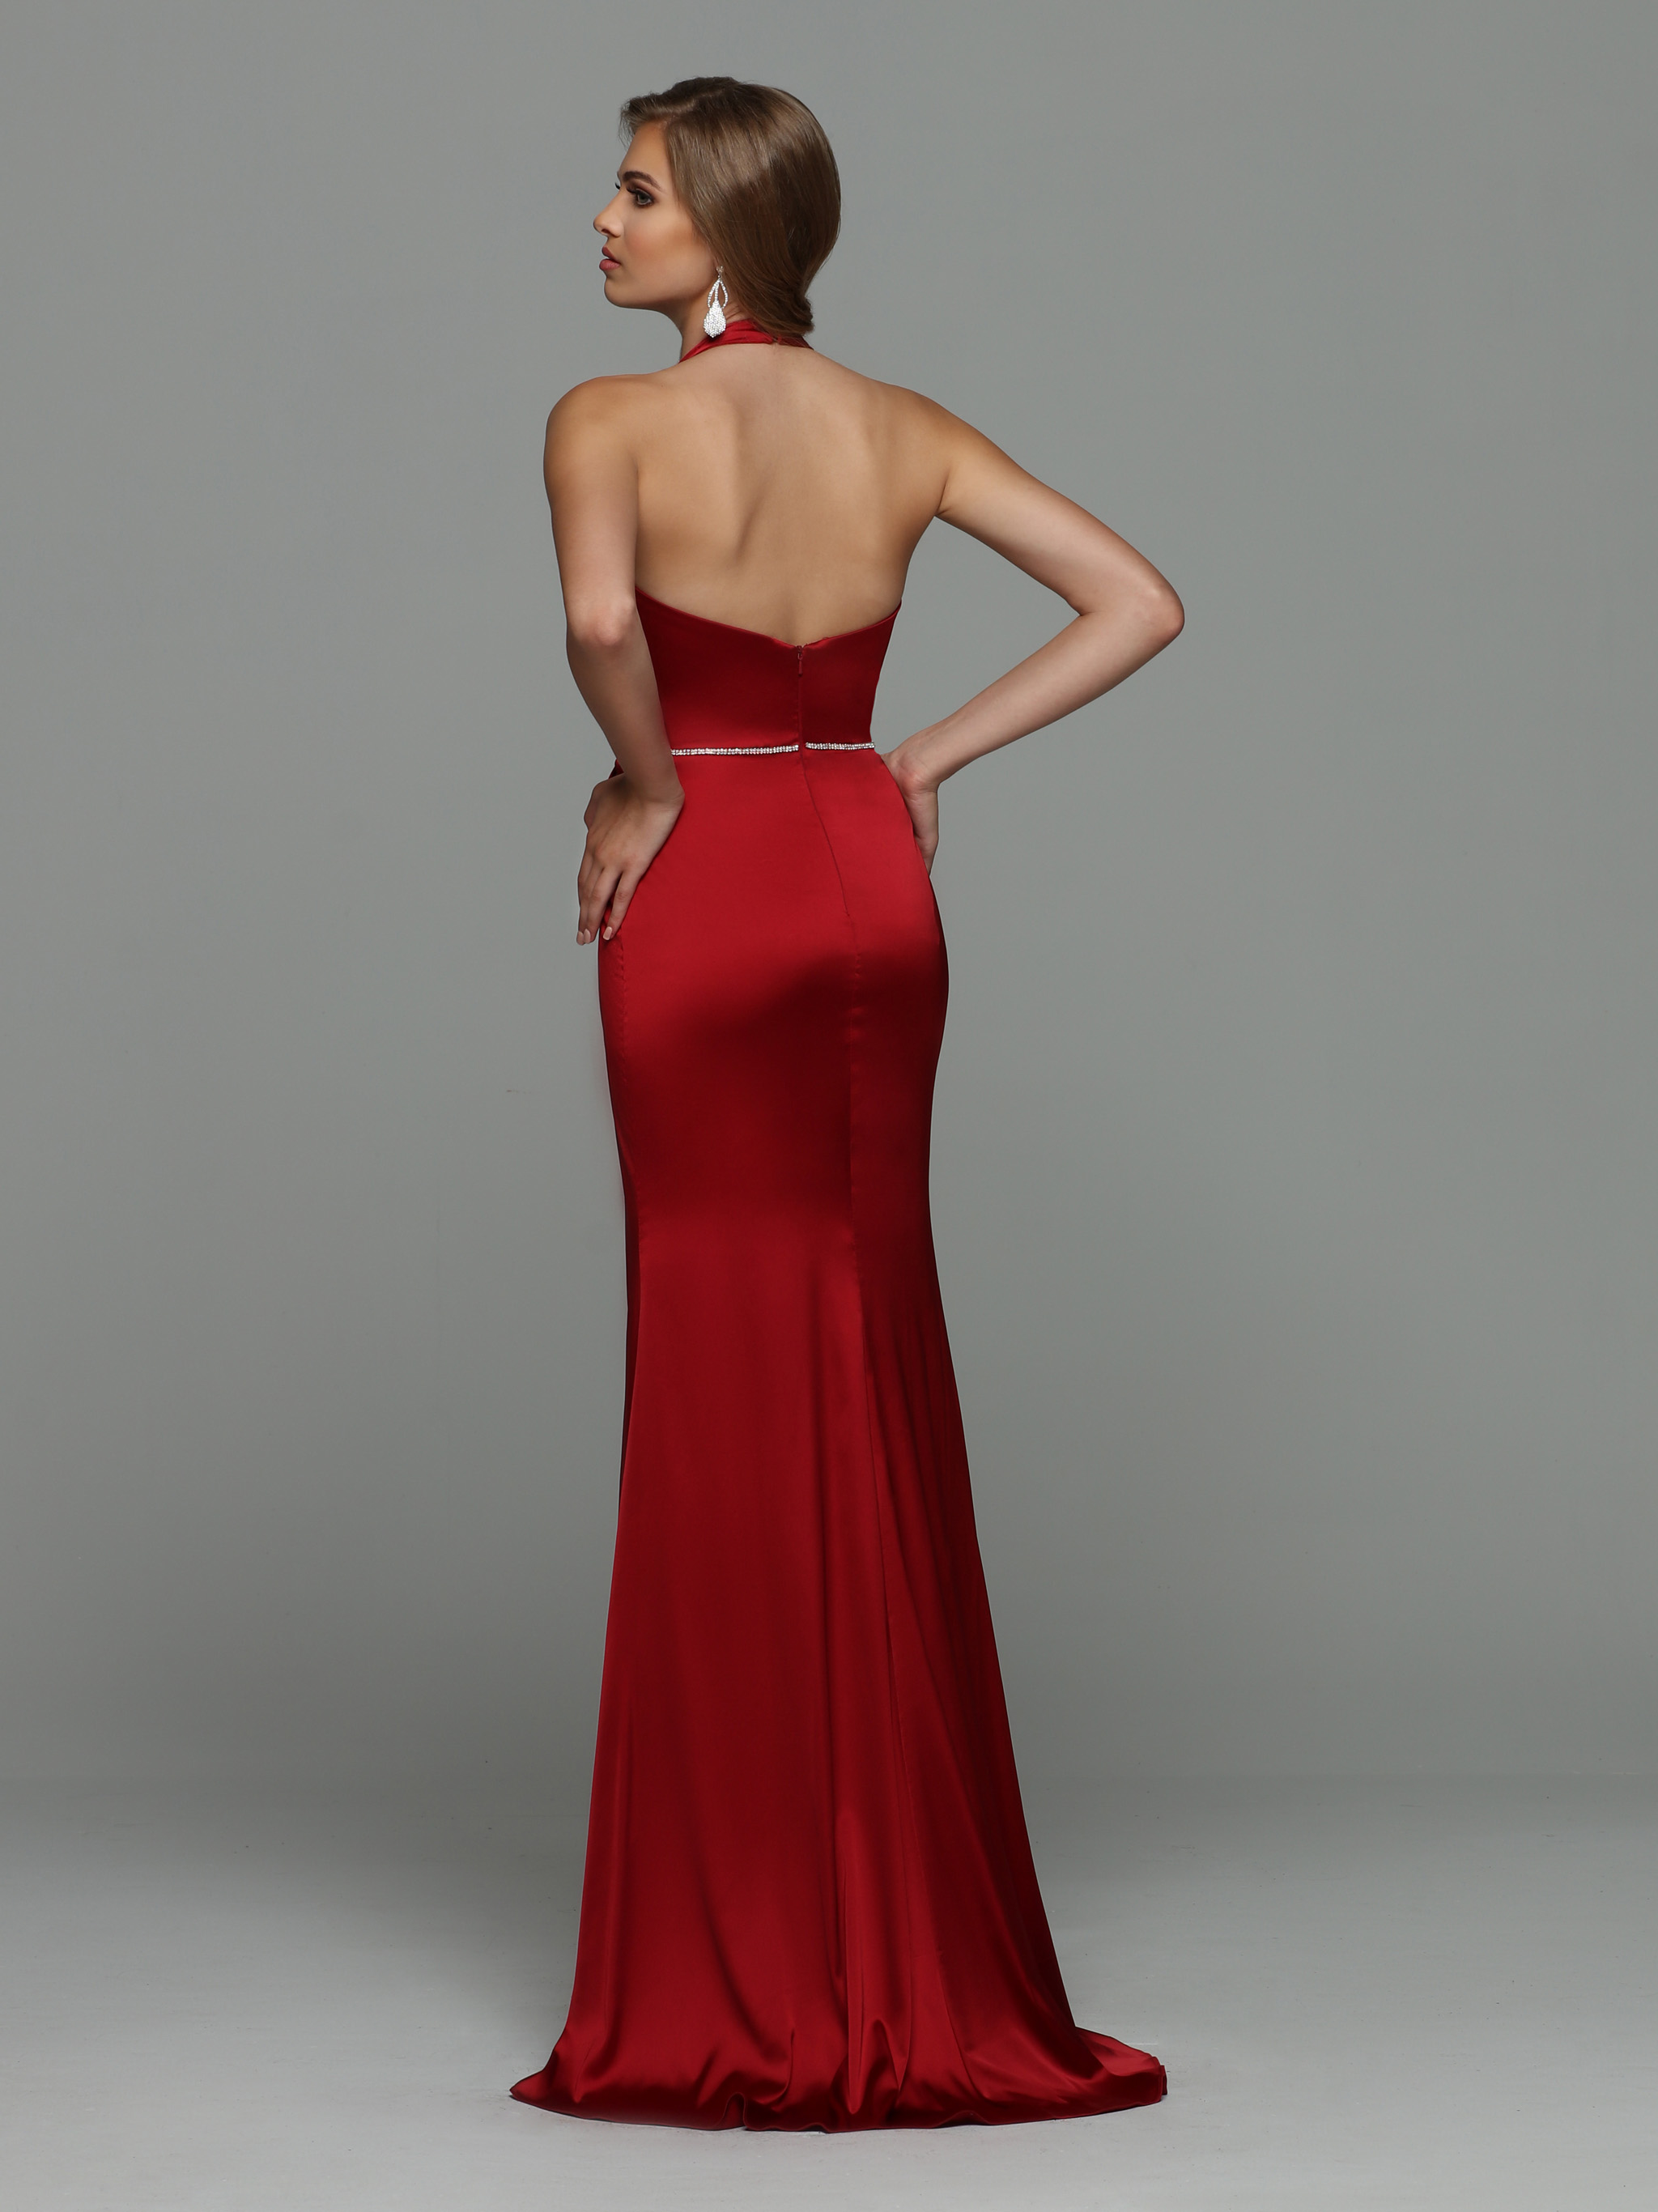 Image showing back view of style #71968